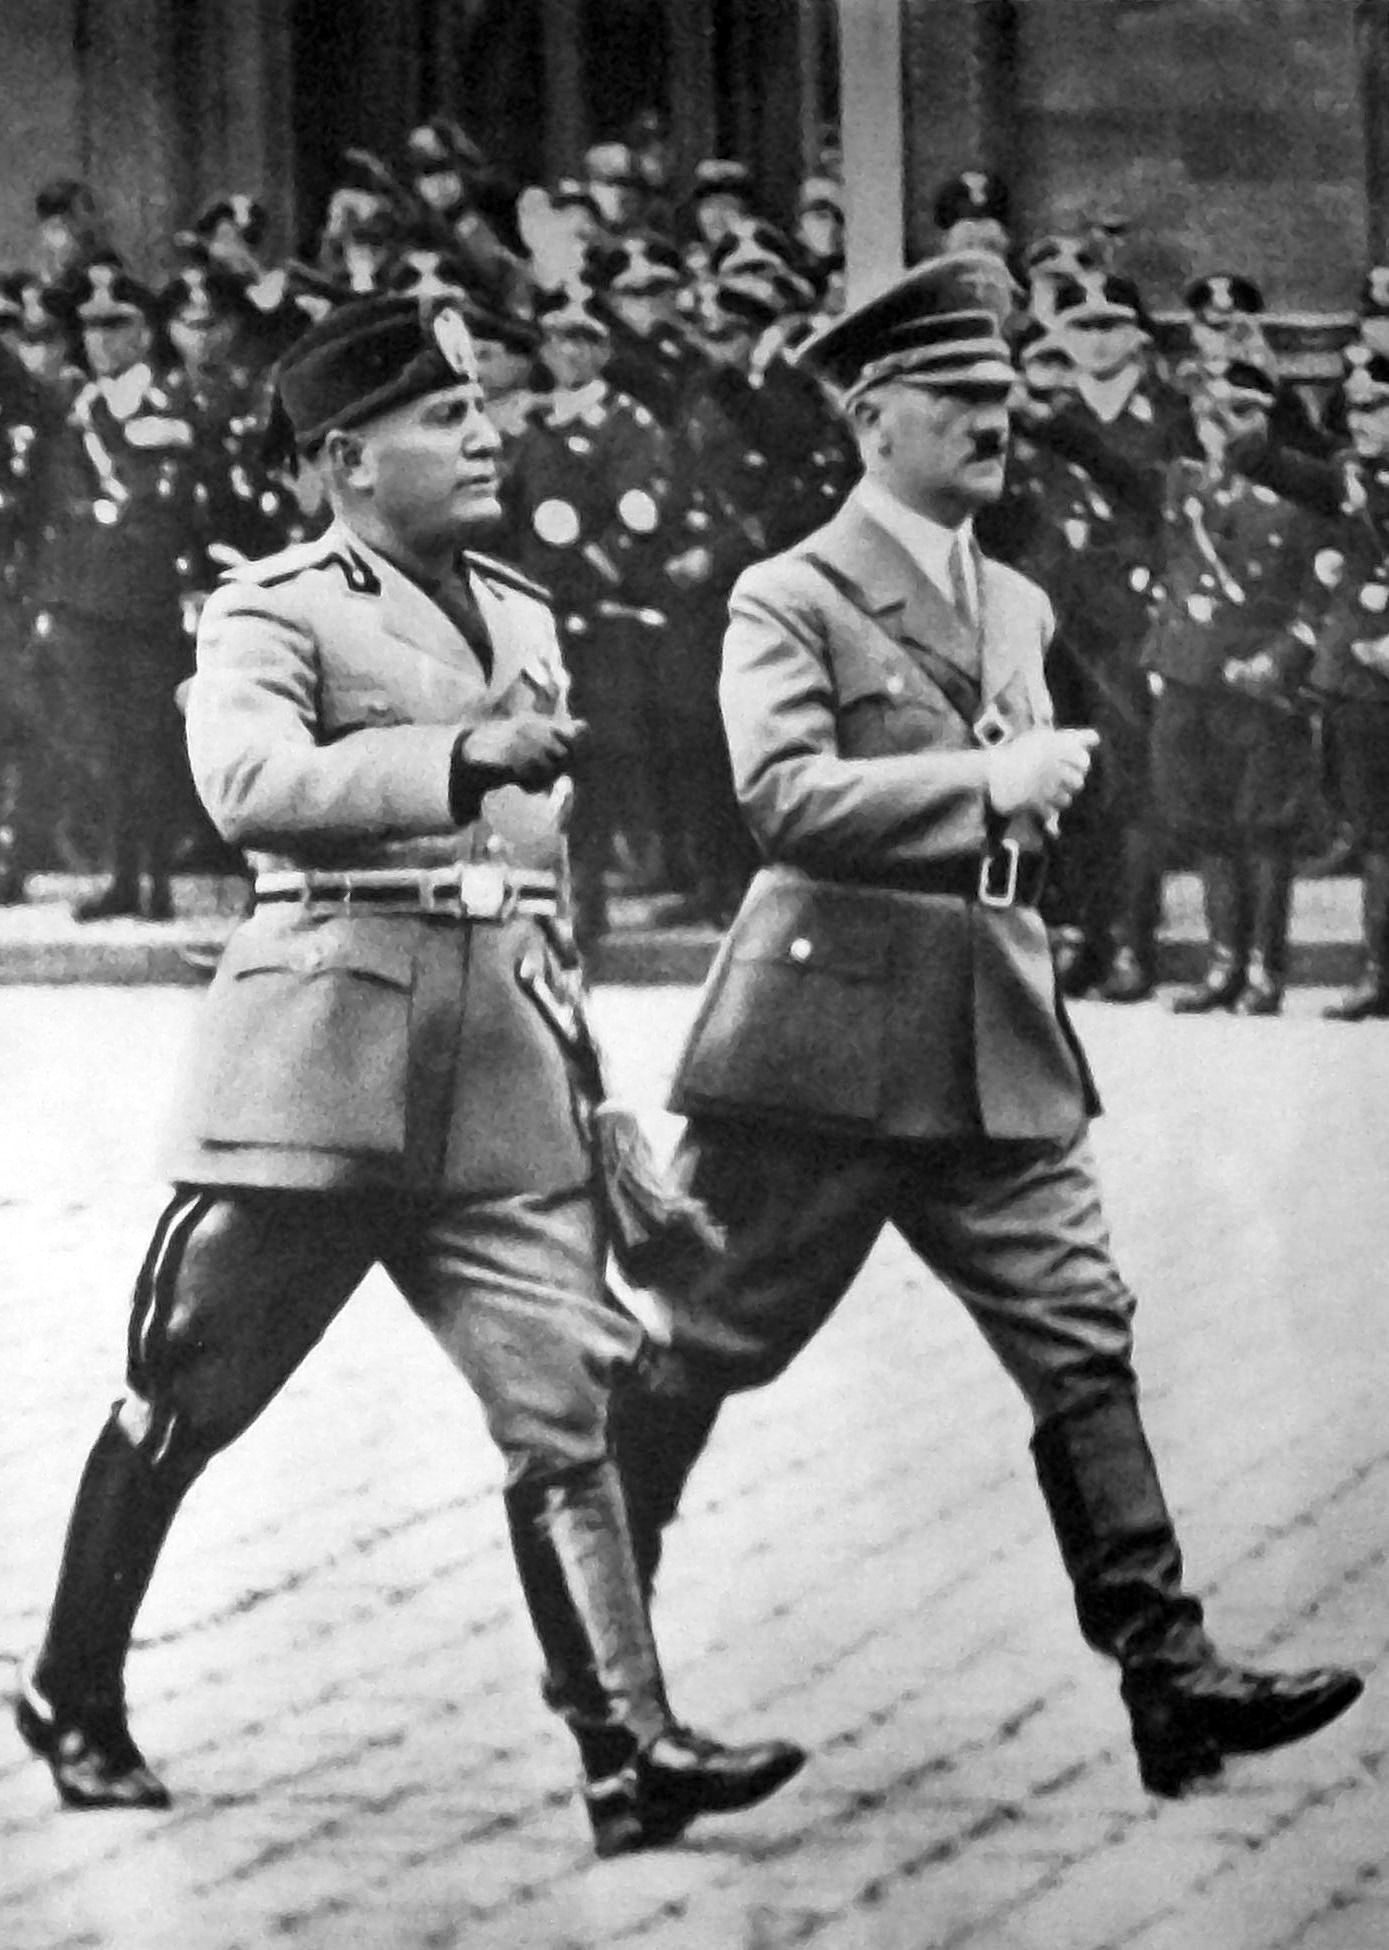 a biography of benito mussolini an italian leader during second world war The official newspaper of benito mussolini's fascist party mussolini: a new life, nicholas farrell military history of italy during world war ii.